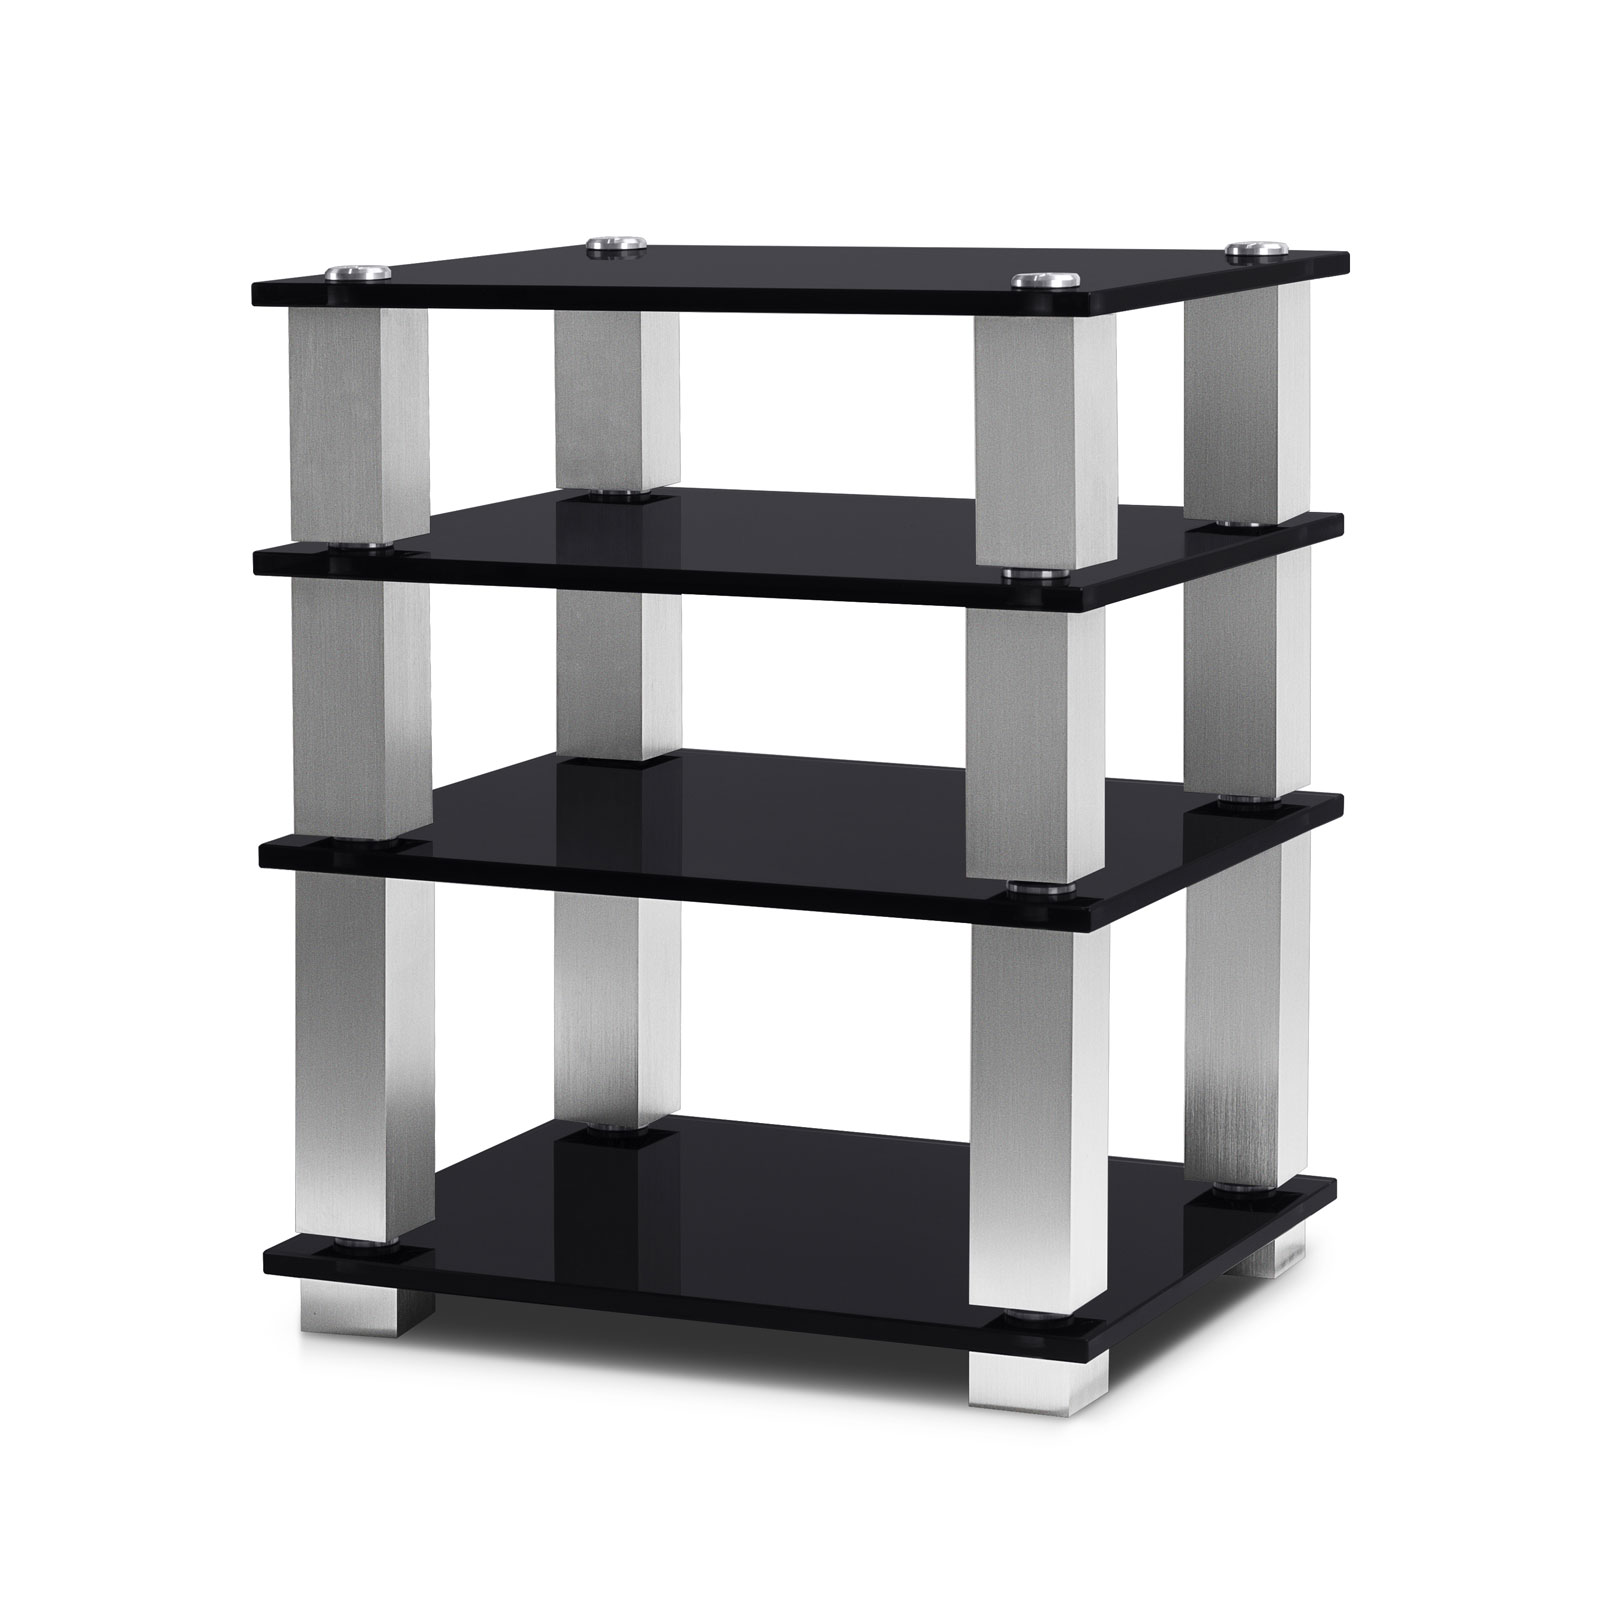 norstone square hifi meuble tv norstone sur. Black Bedroom Furniture Sets. Home Design Ideas